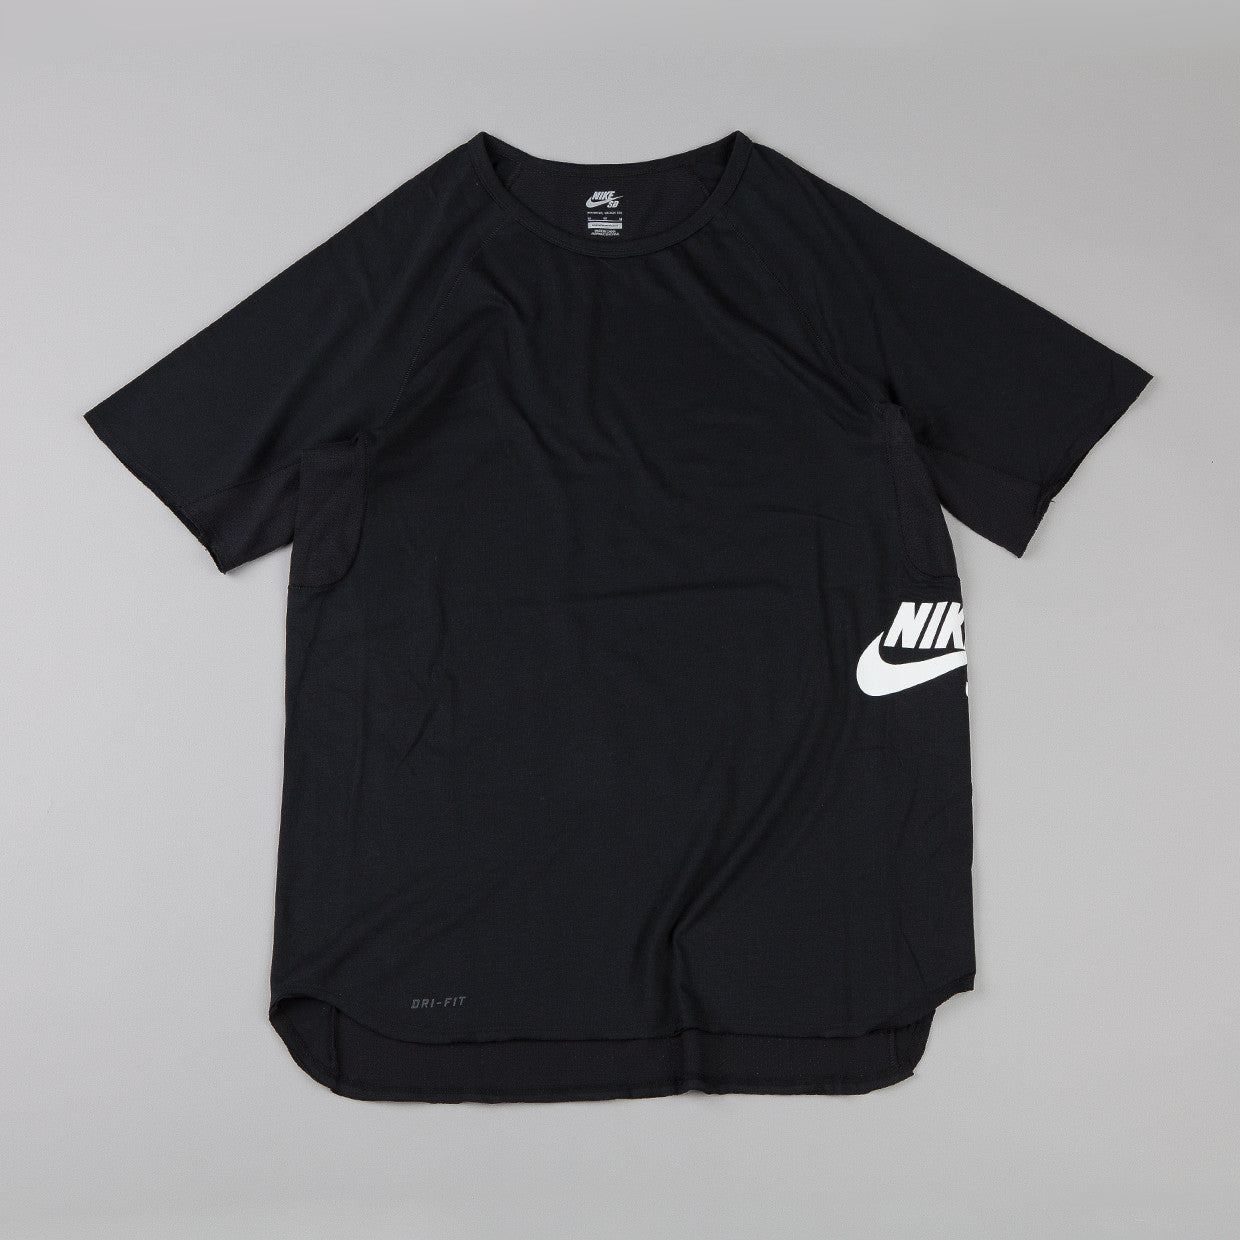 Nike Sb Dri-fit Skyline T-shirt Black / White